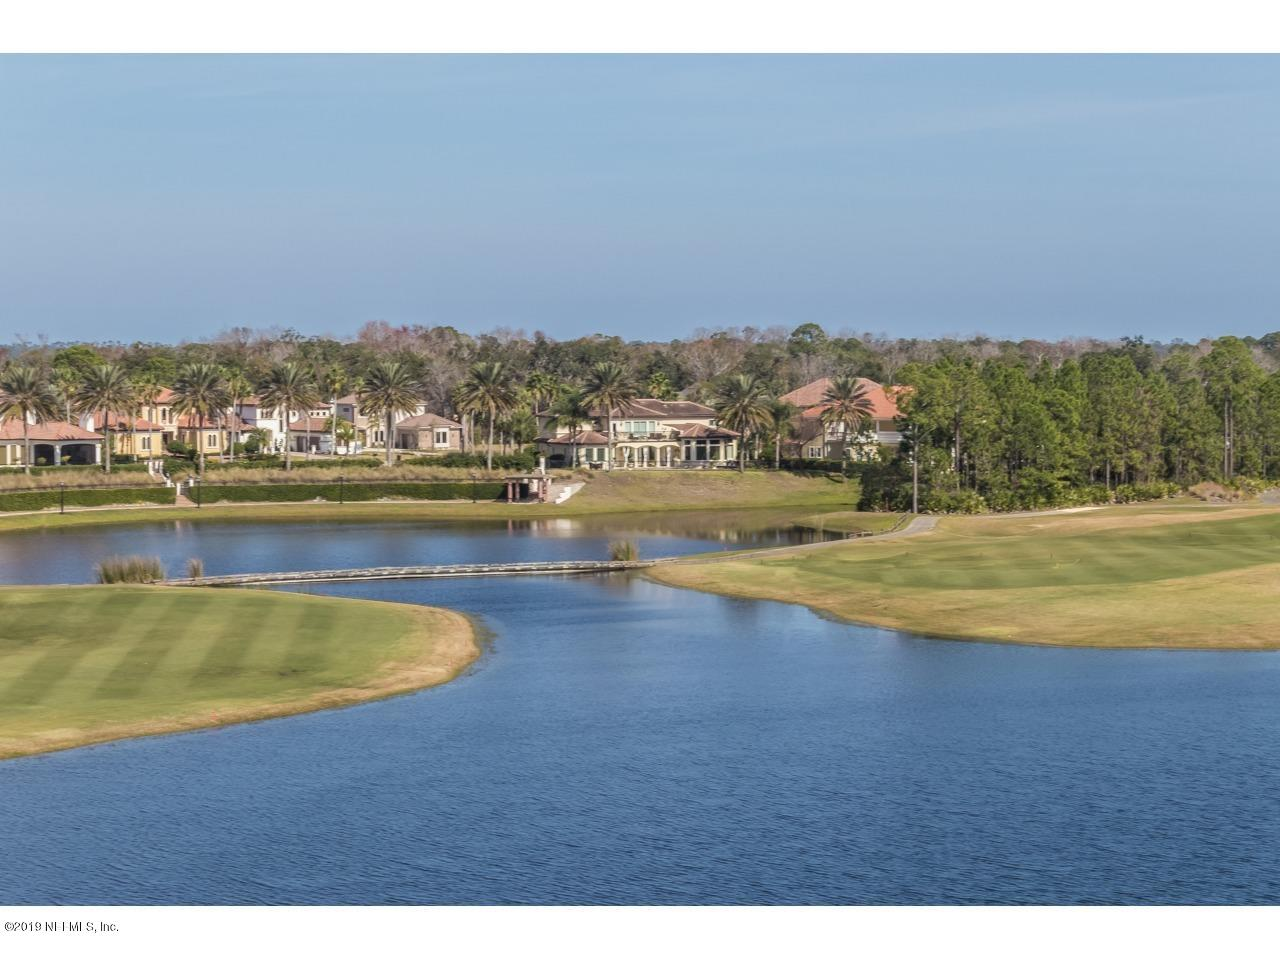 620 PALENCIA CLUB, ST AUGUSTINE, FLORIDA 32095, 3 Bedrooms Bedrooms, ,3 BathroomsBathrooms,Residential - condos/townhomes,For sale,PALENCIA CLUB,978161